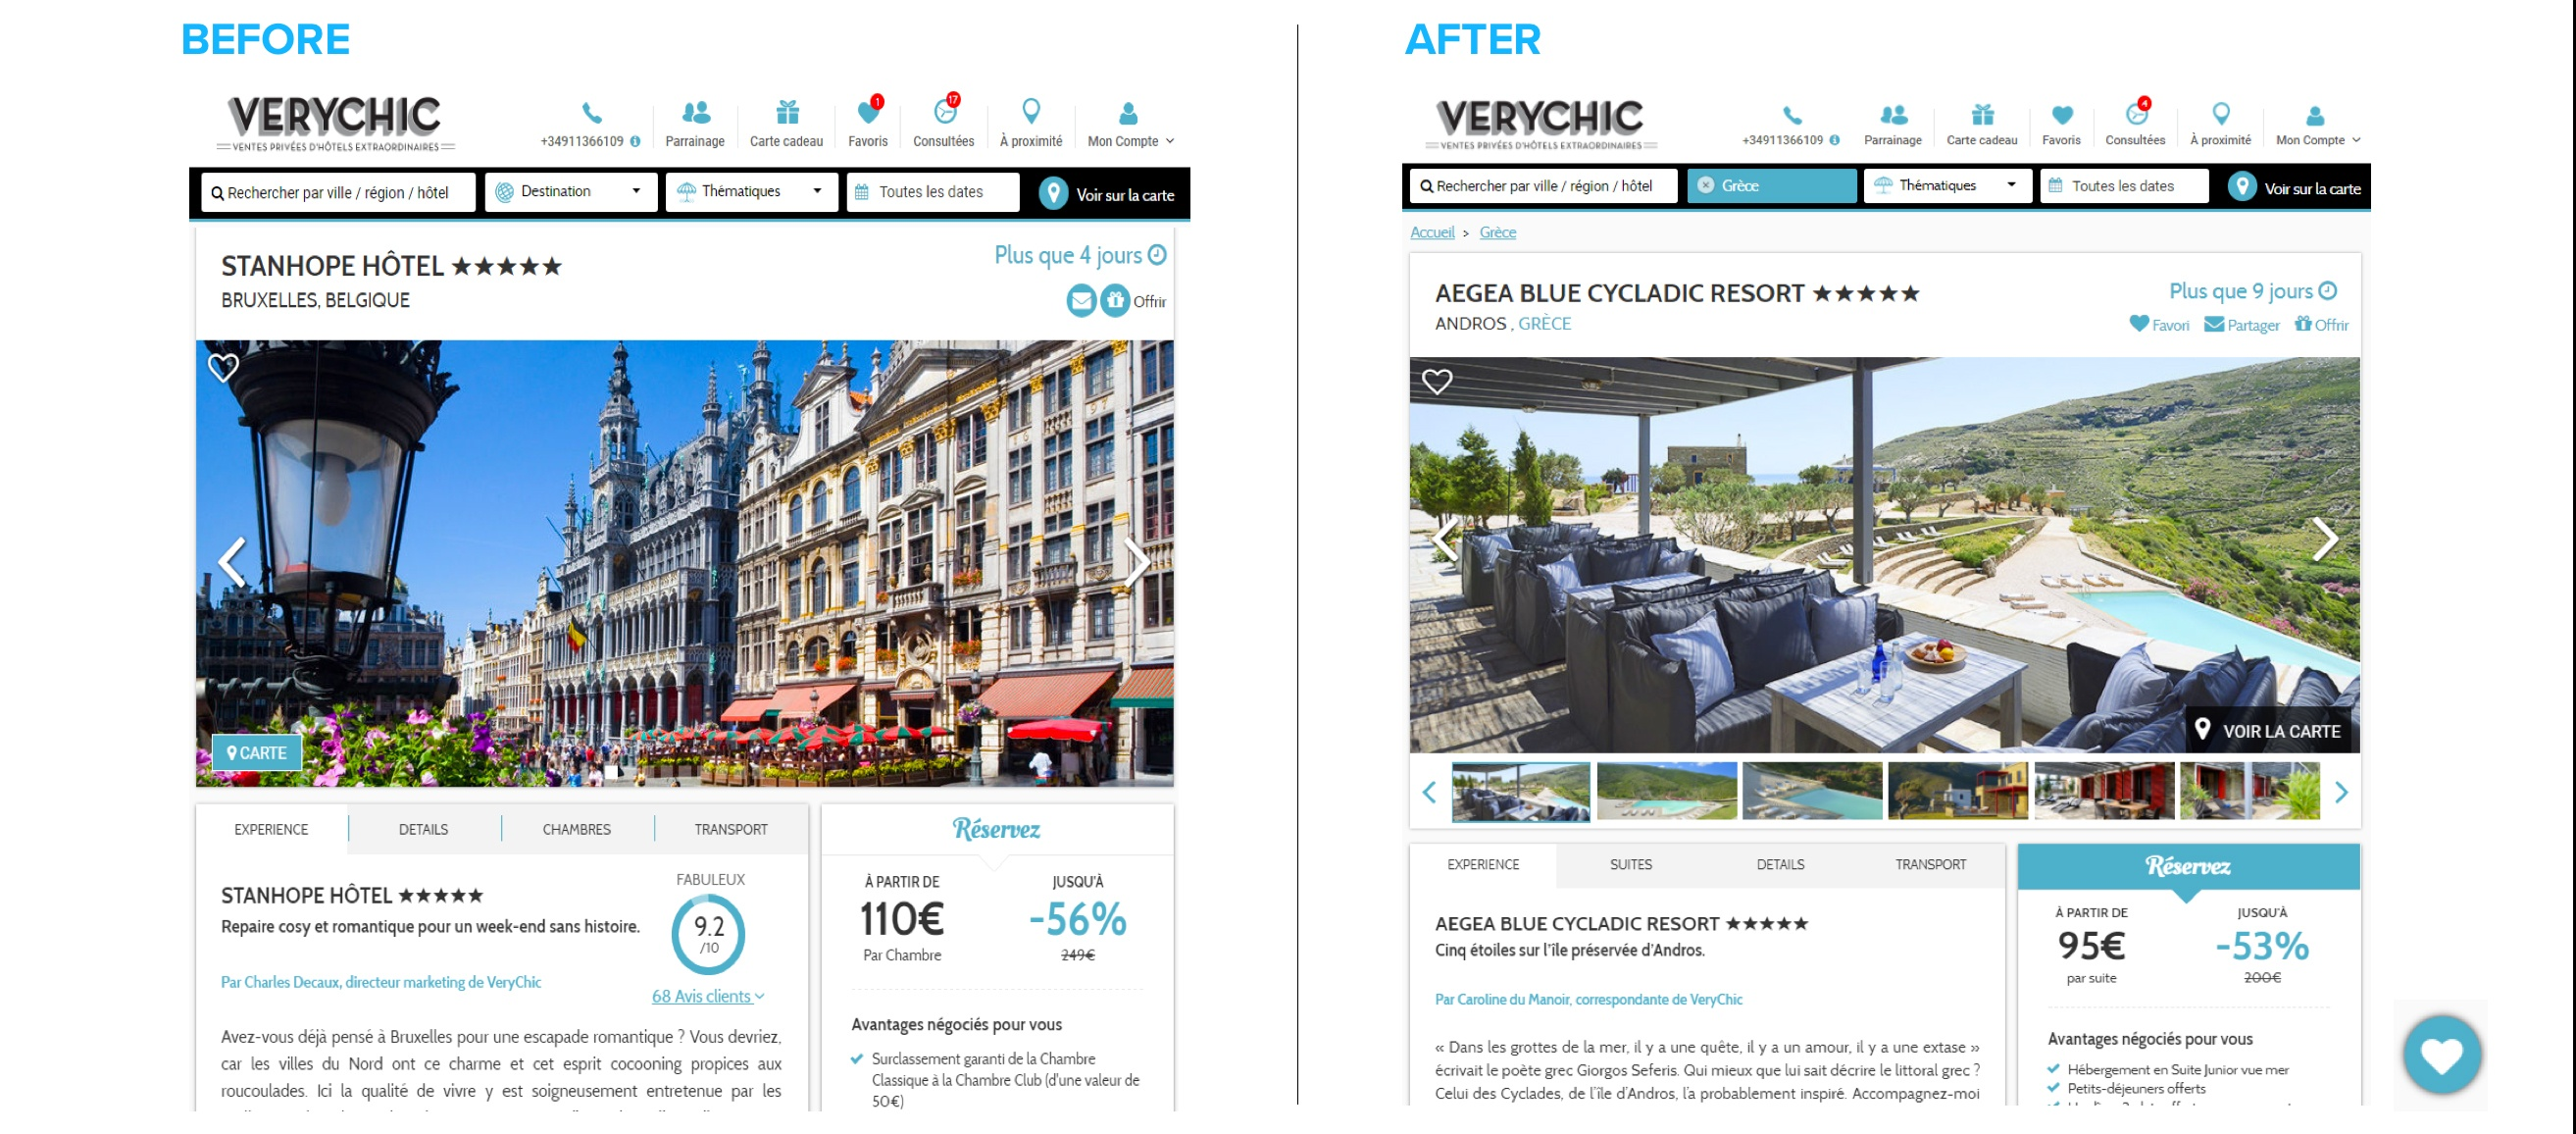 VeryChic_Before-After.jpg